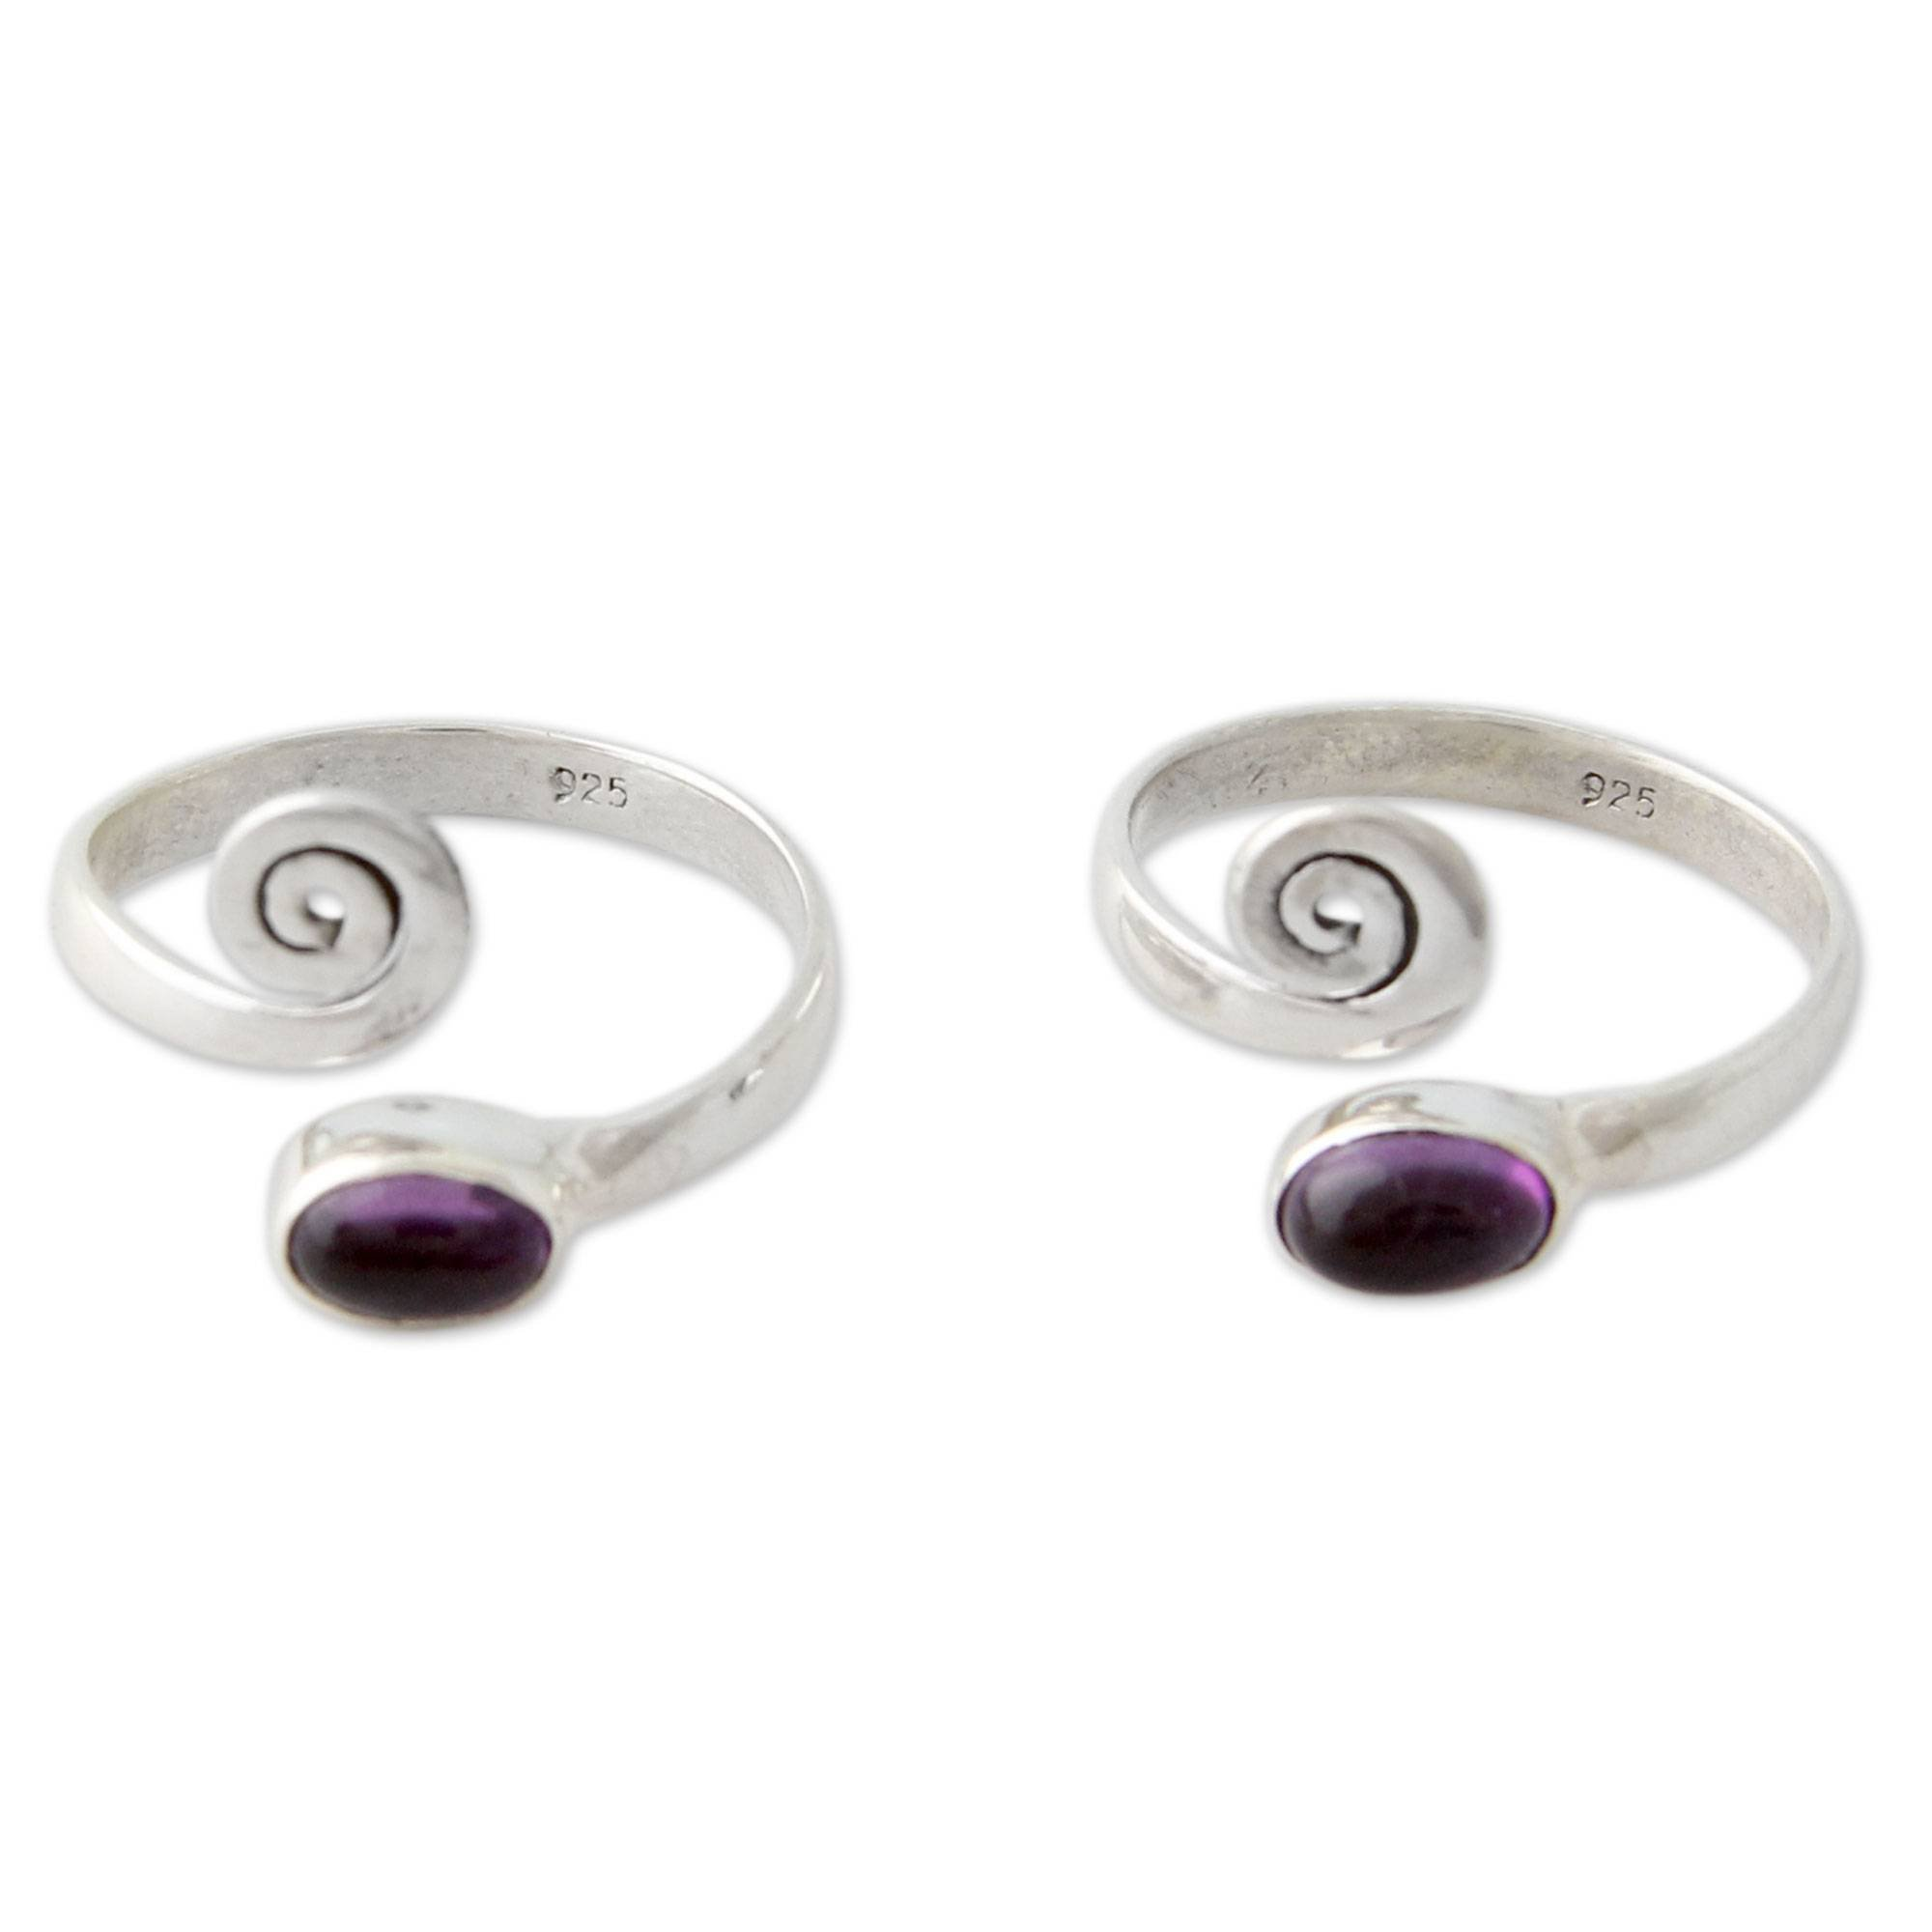 NOVICA .925 Sterling Silver and Cabochon Amethyst Toe Rings (Pair), Curls'